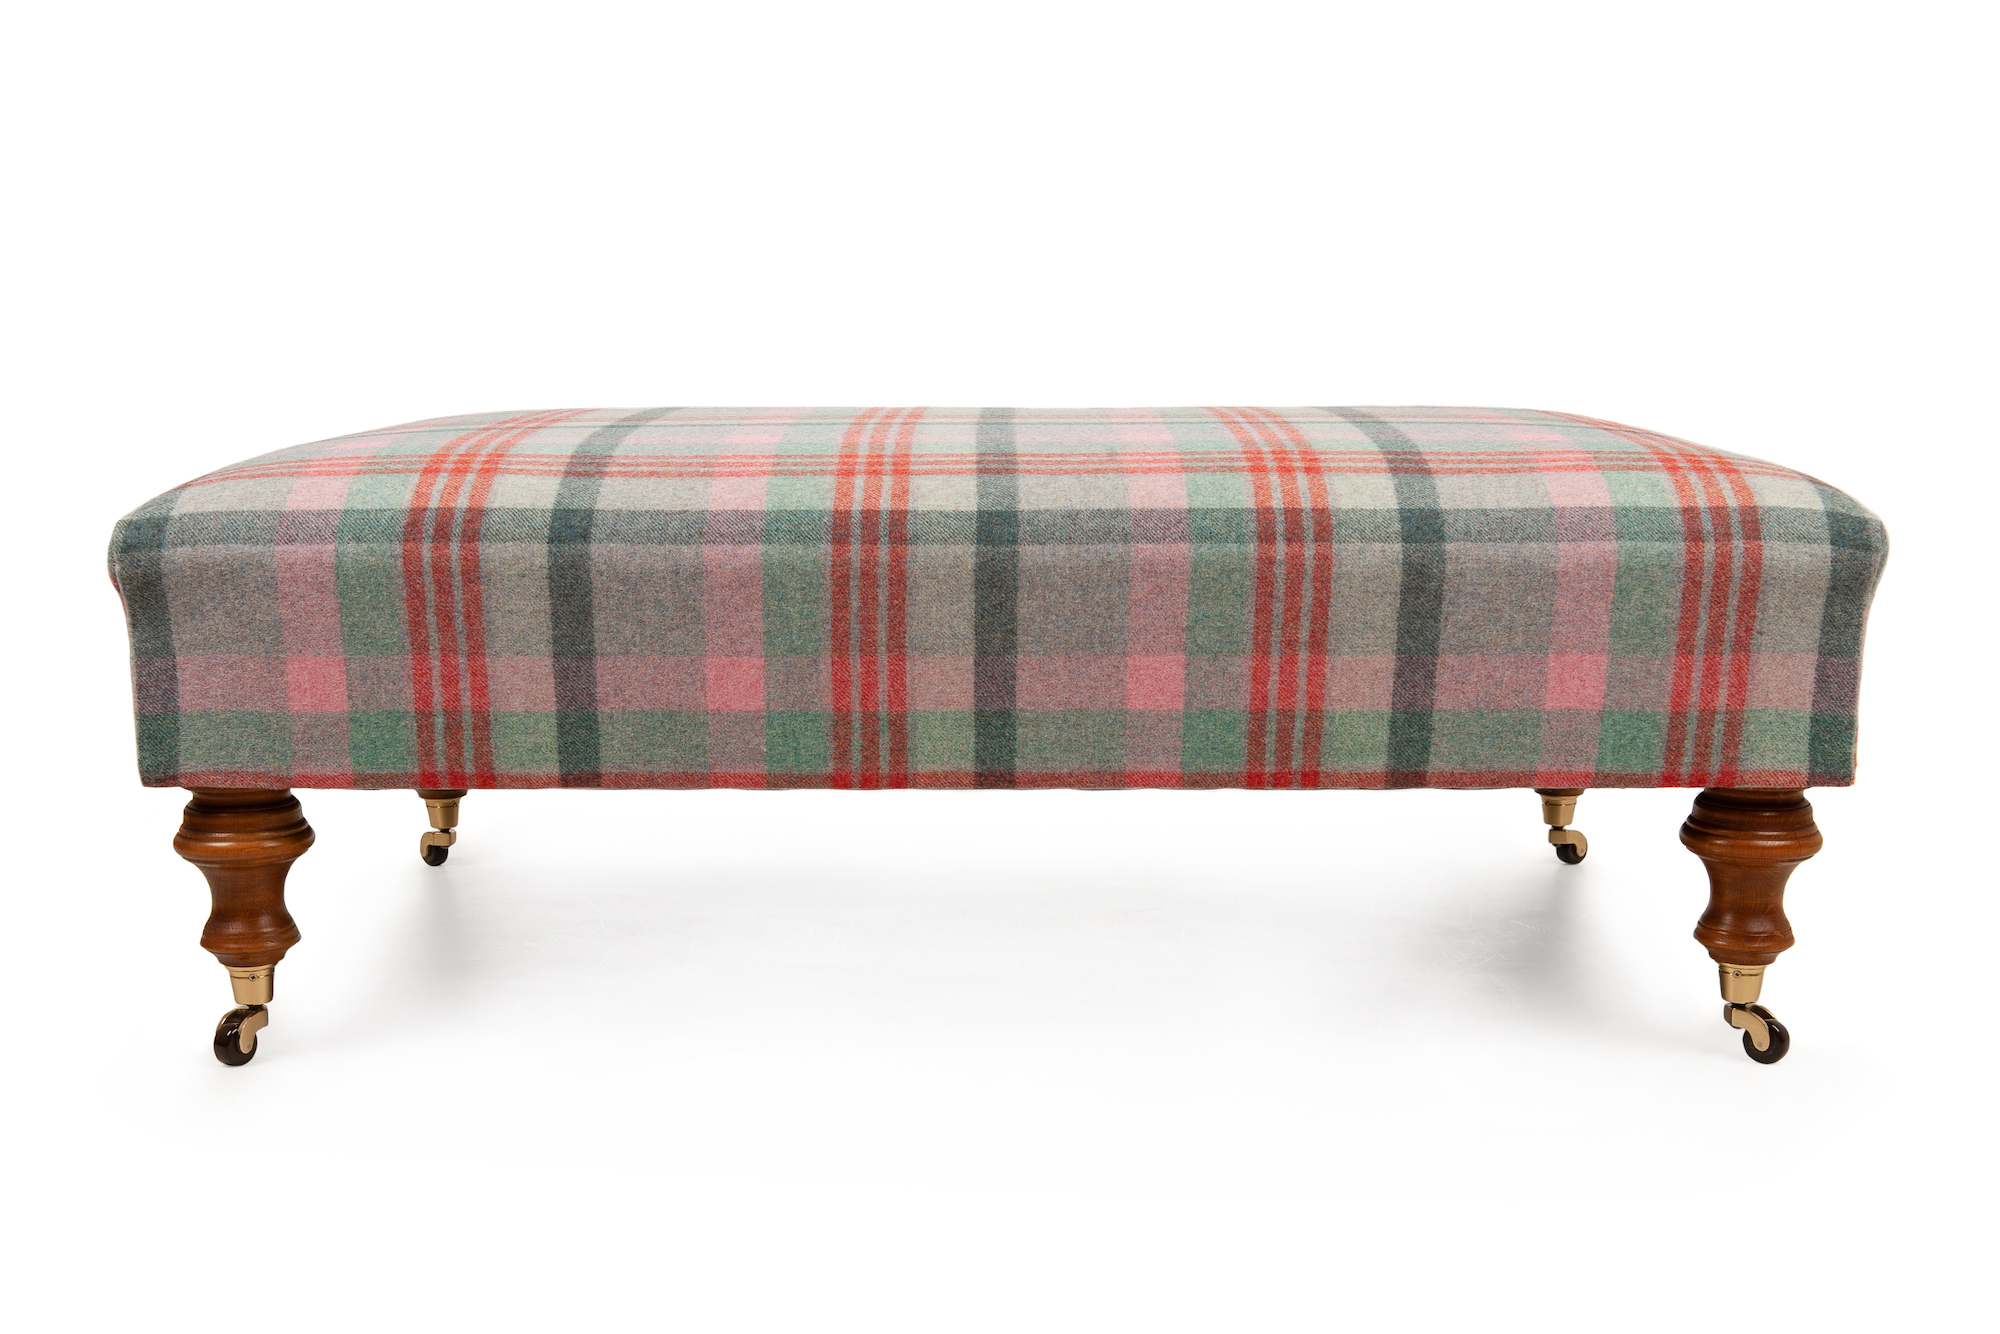 Traditional Wool Plaid Footstool with Turned Legs and Castors